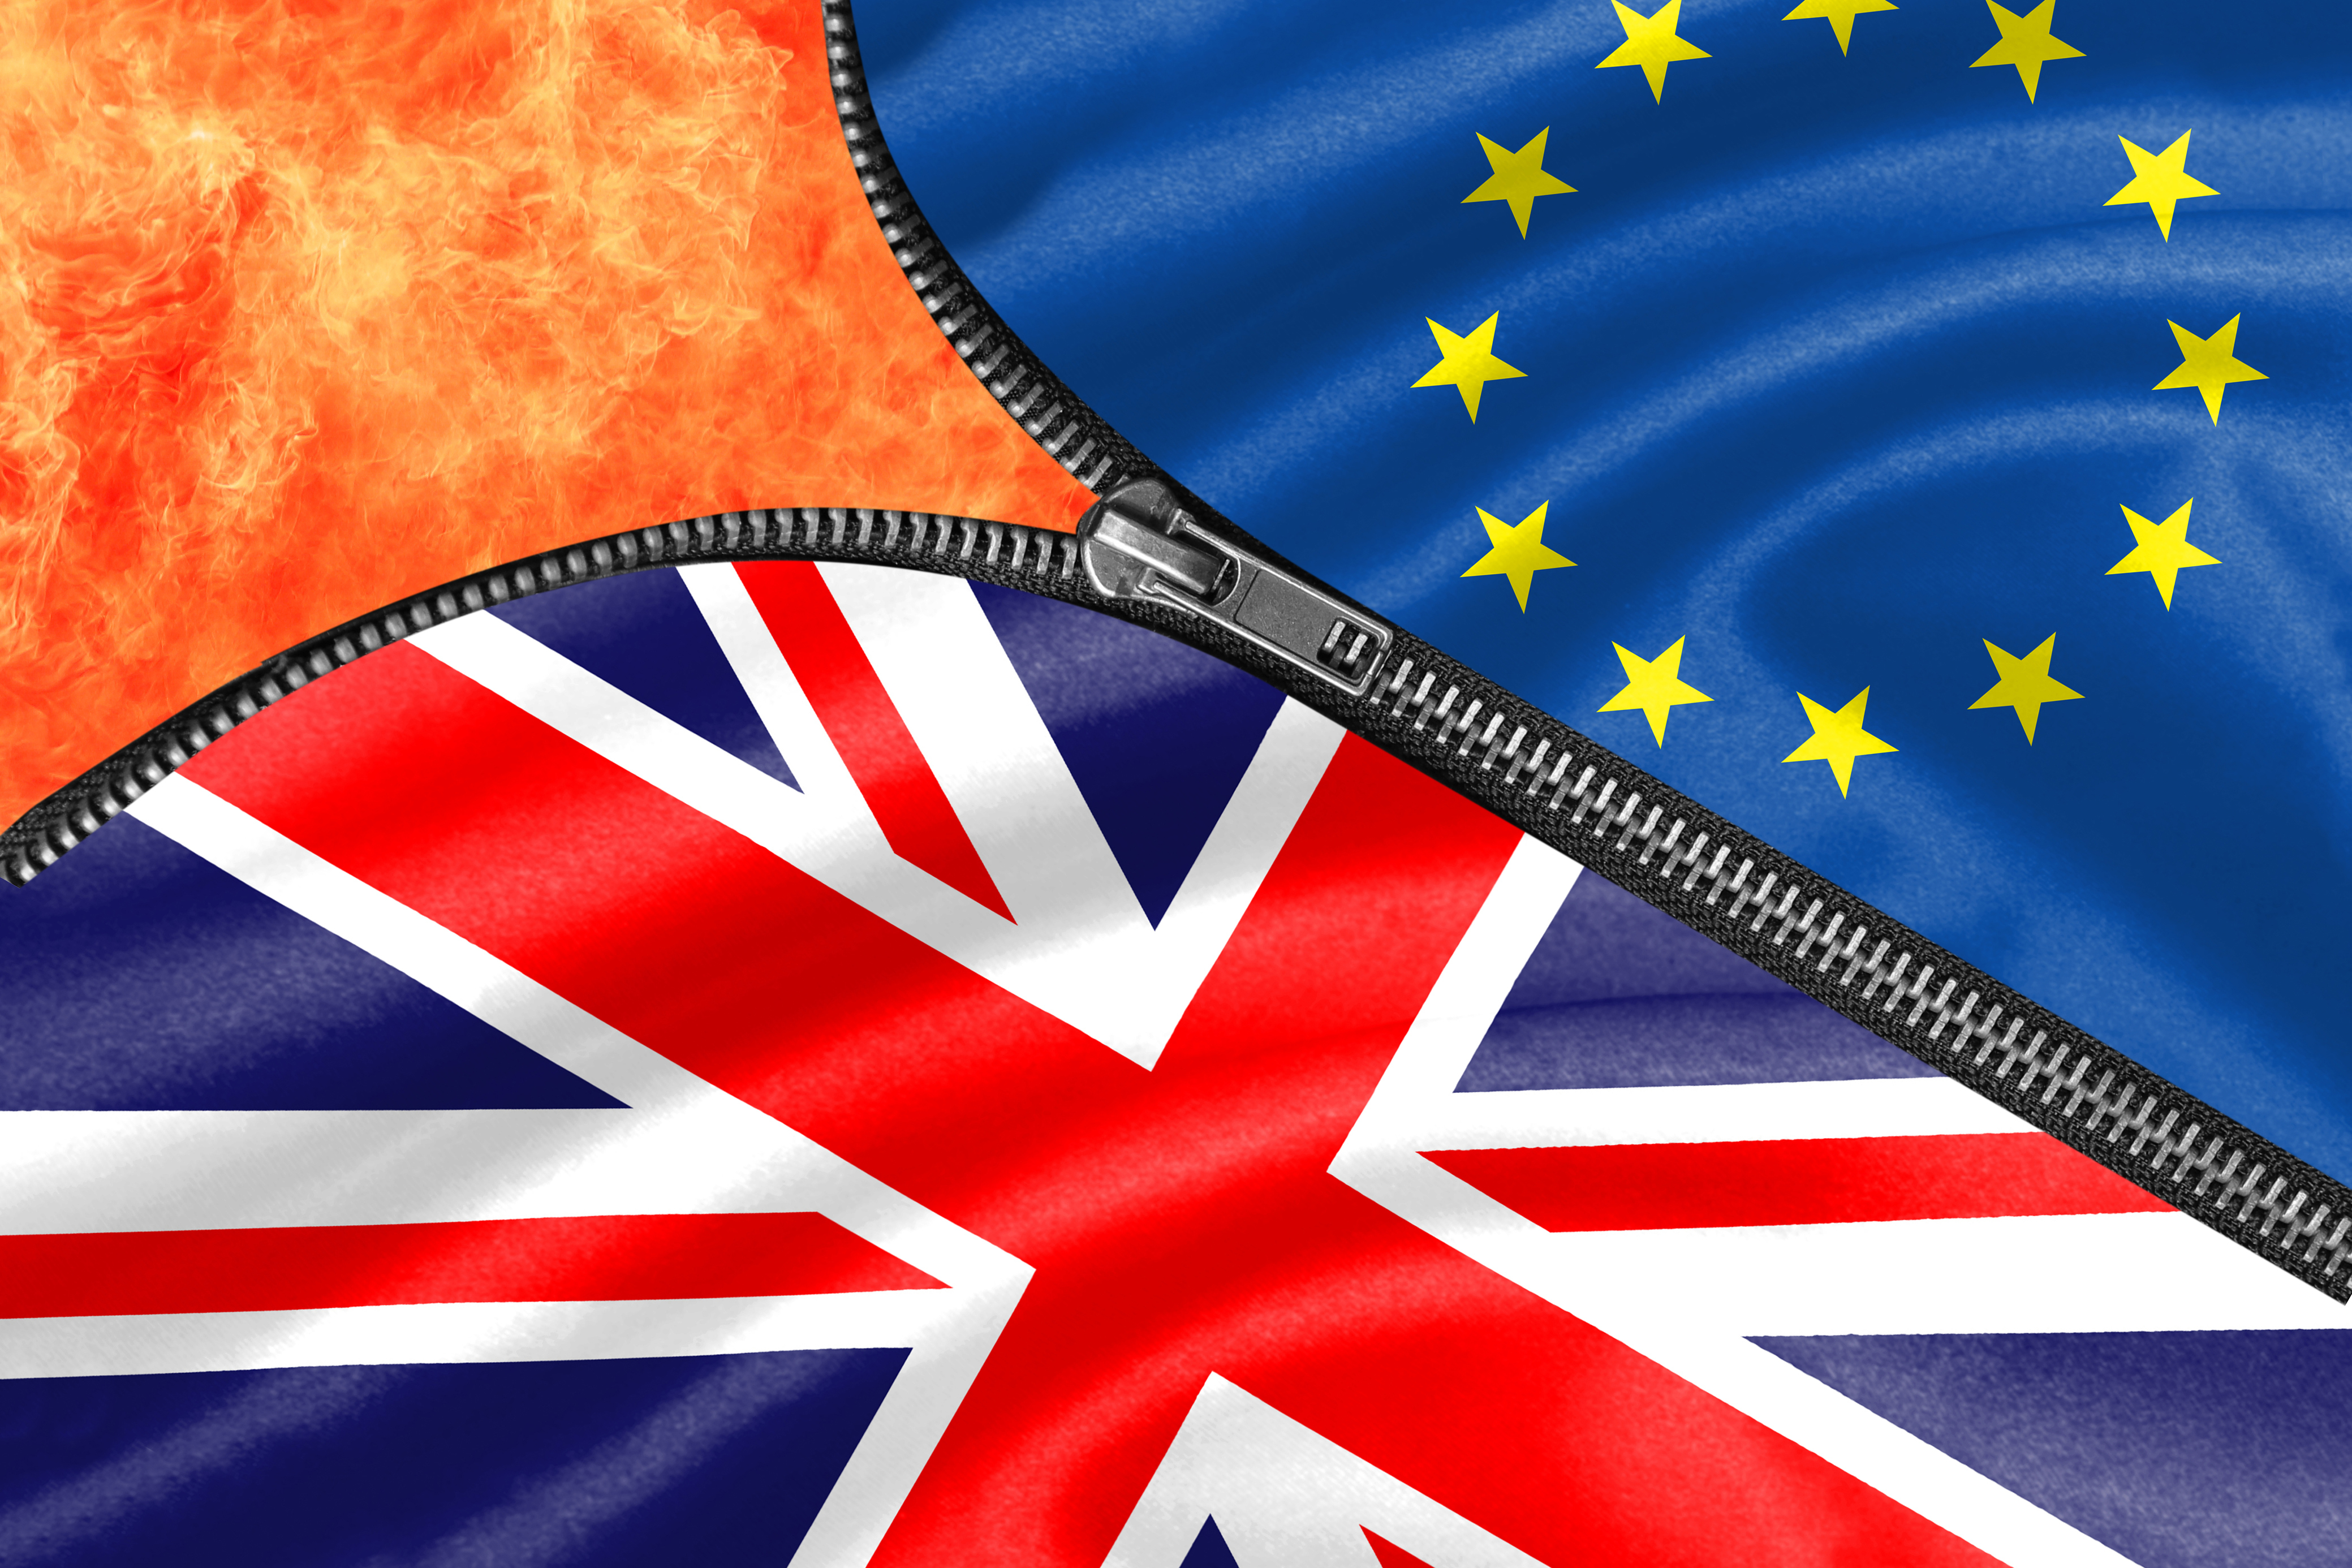 Brexit Debates Heat Up: 5 Geopolitical Effects You Need to Know